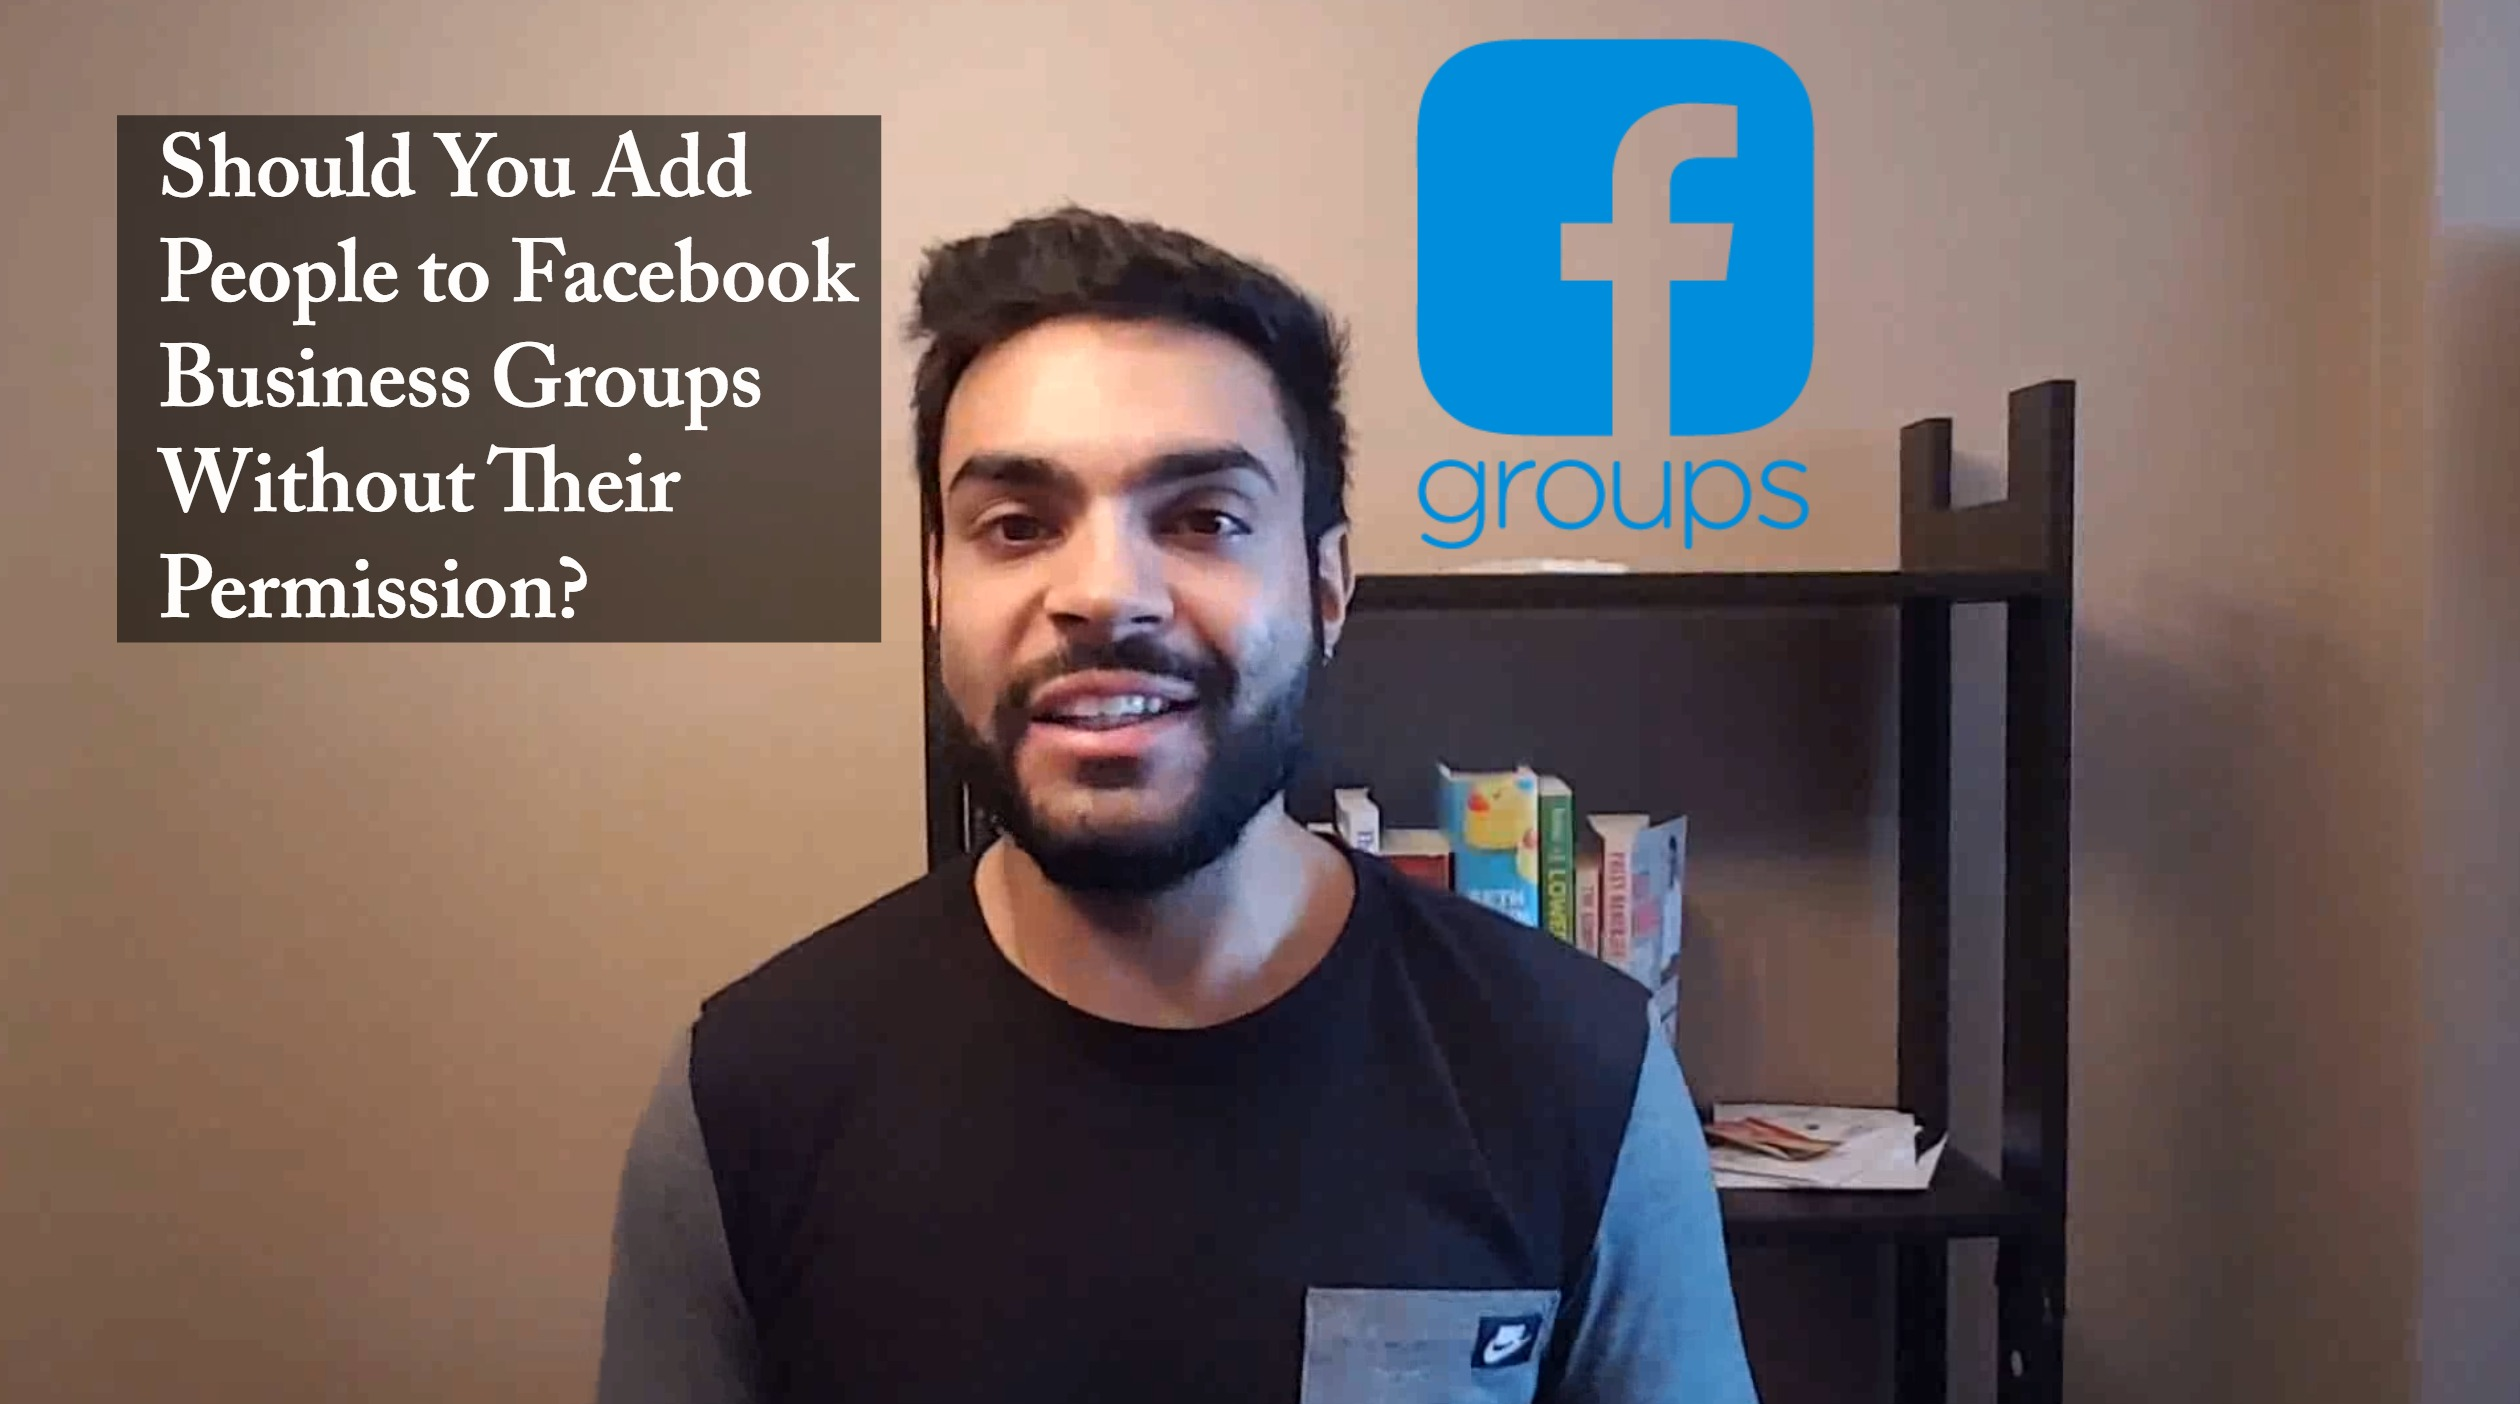 Should You Add People to Facebook Business Groups